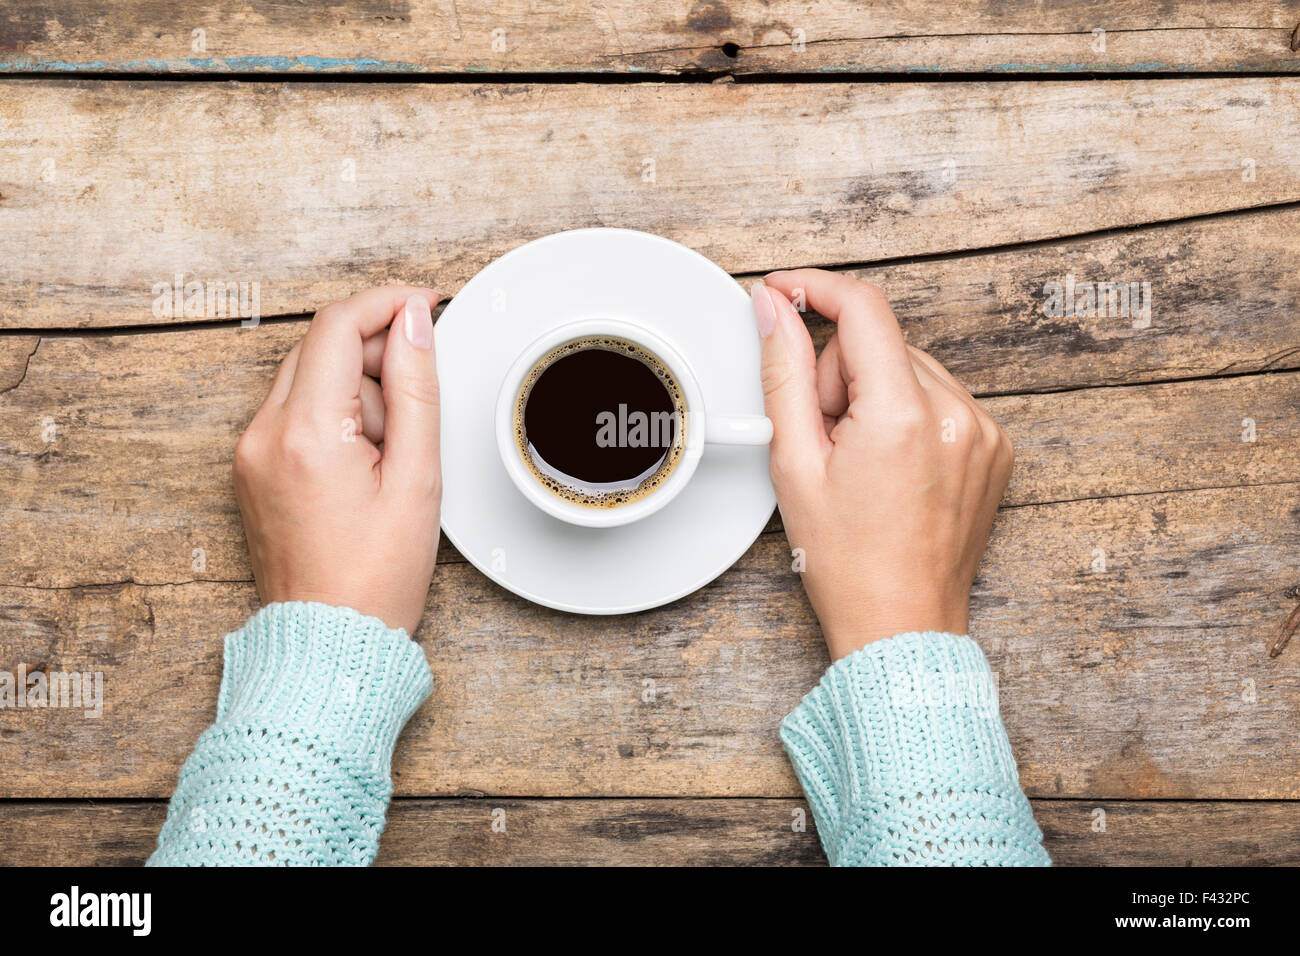 Woman holding cup of espresso on wooden table. Breakfast cafe menu background - Stock Image